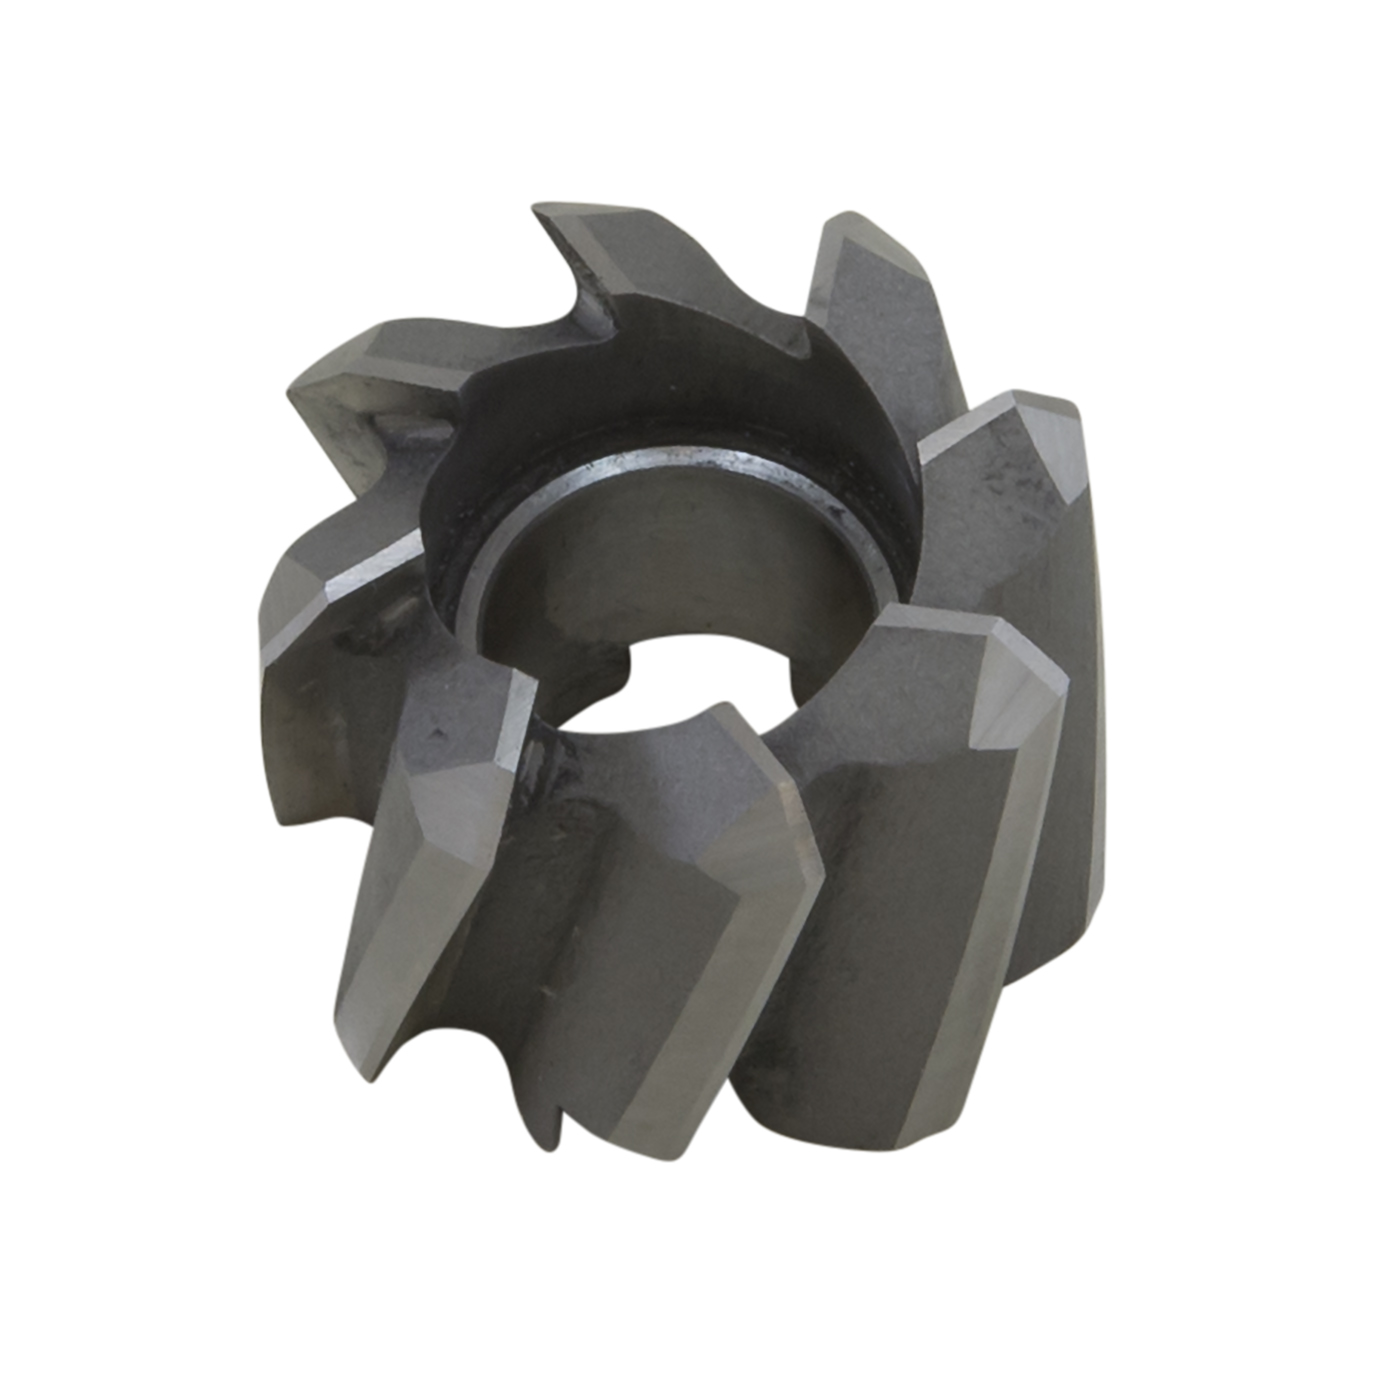 YT H28 - Spindle boring tool replacement cutter for Dana 80  YT H32